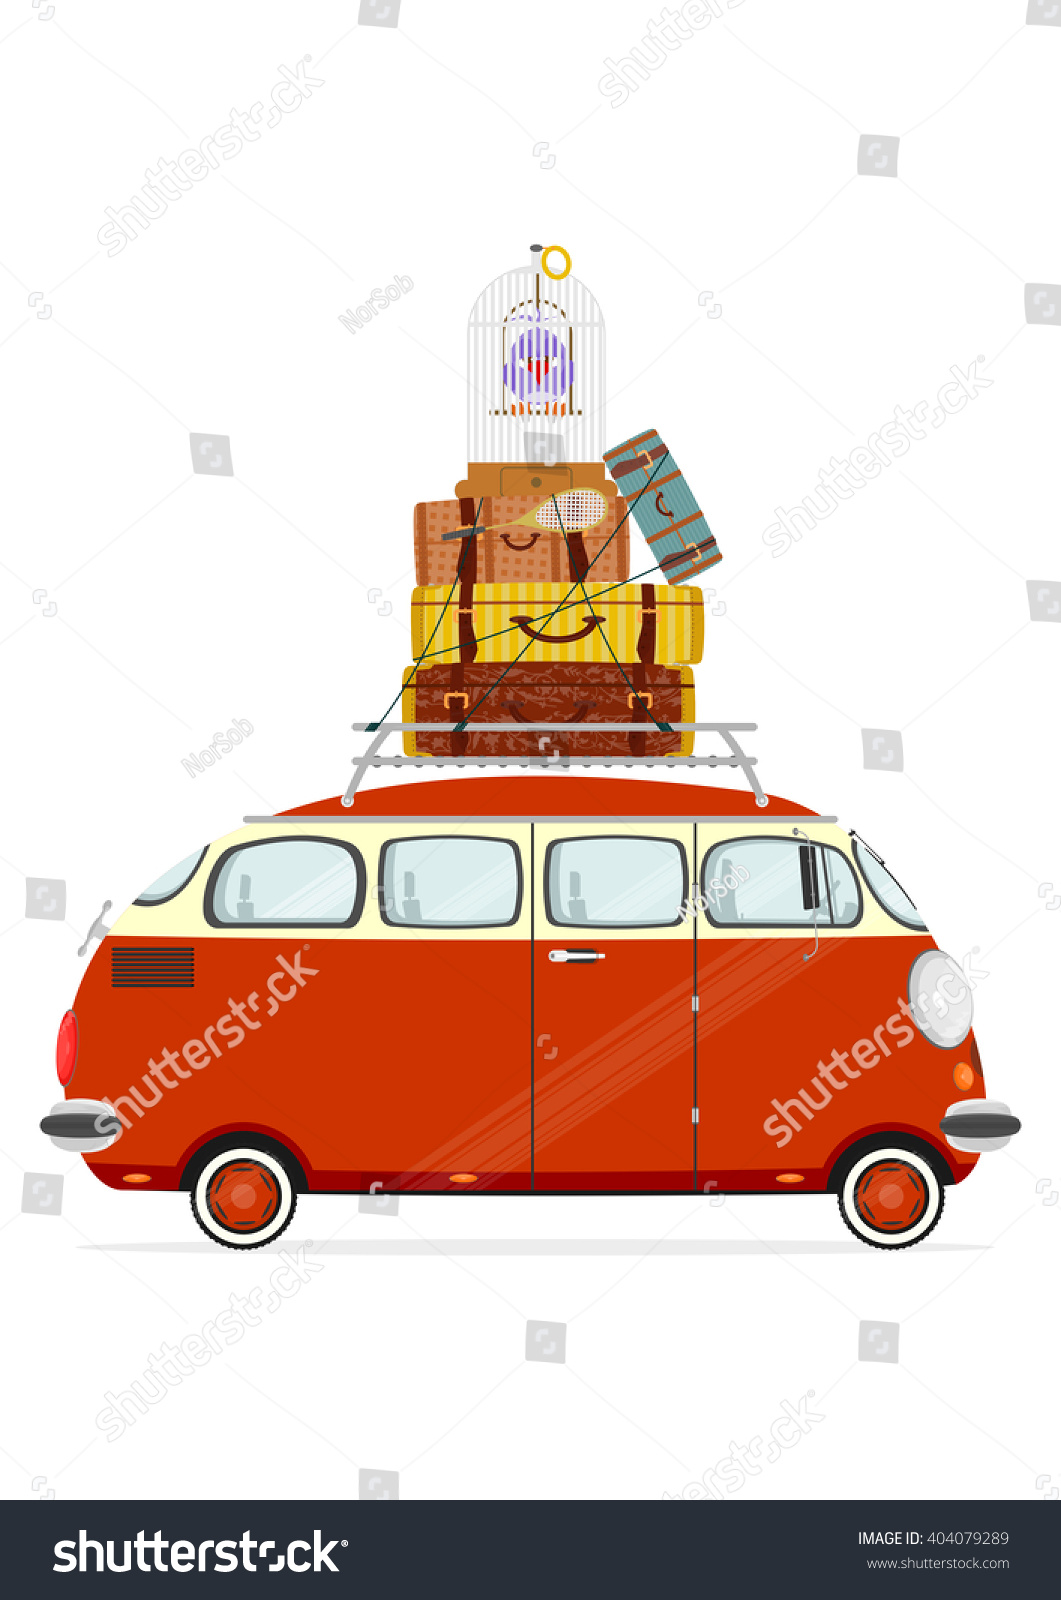 Funny Minivans: Holiday. Funny Cartoon Minivan With Suitcases On A White